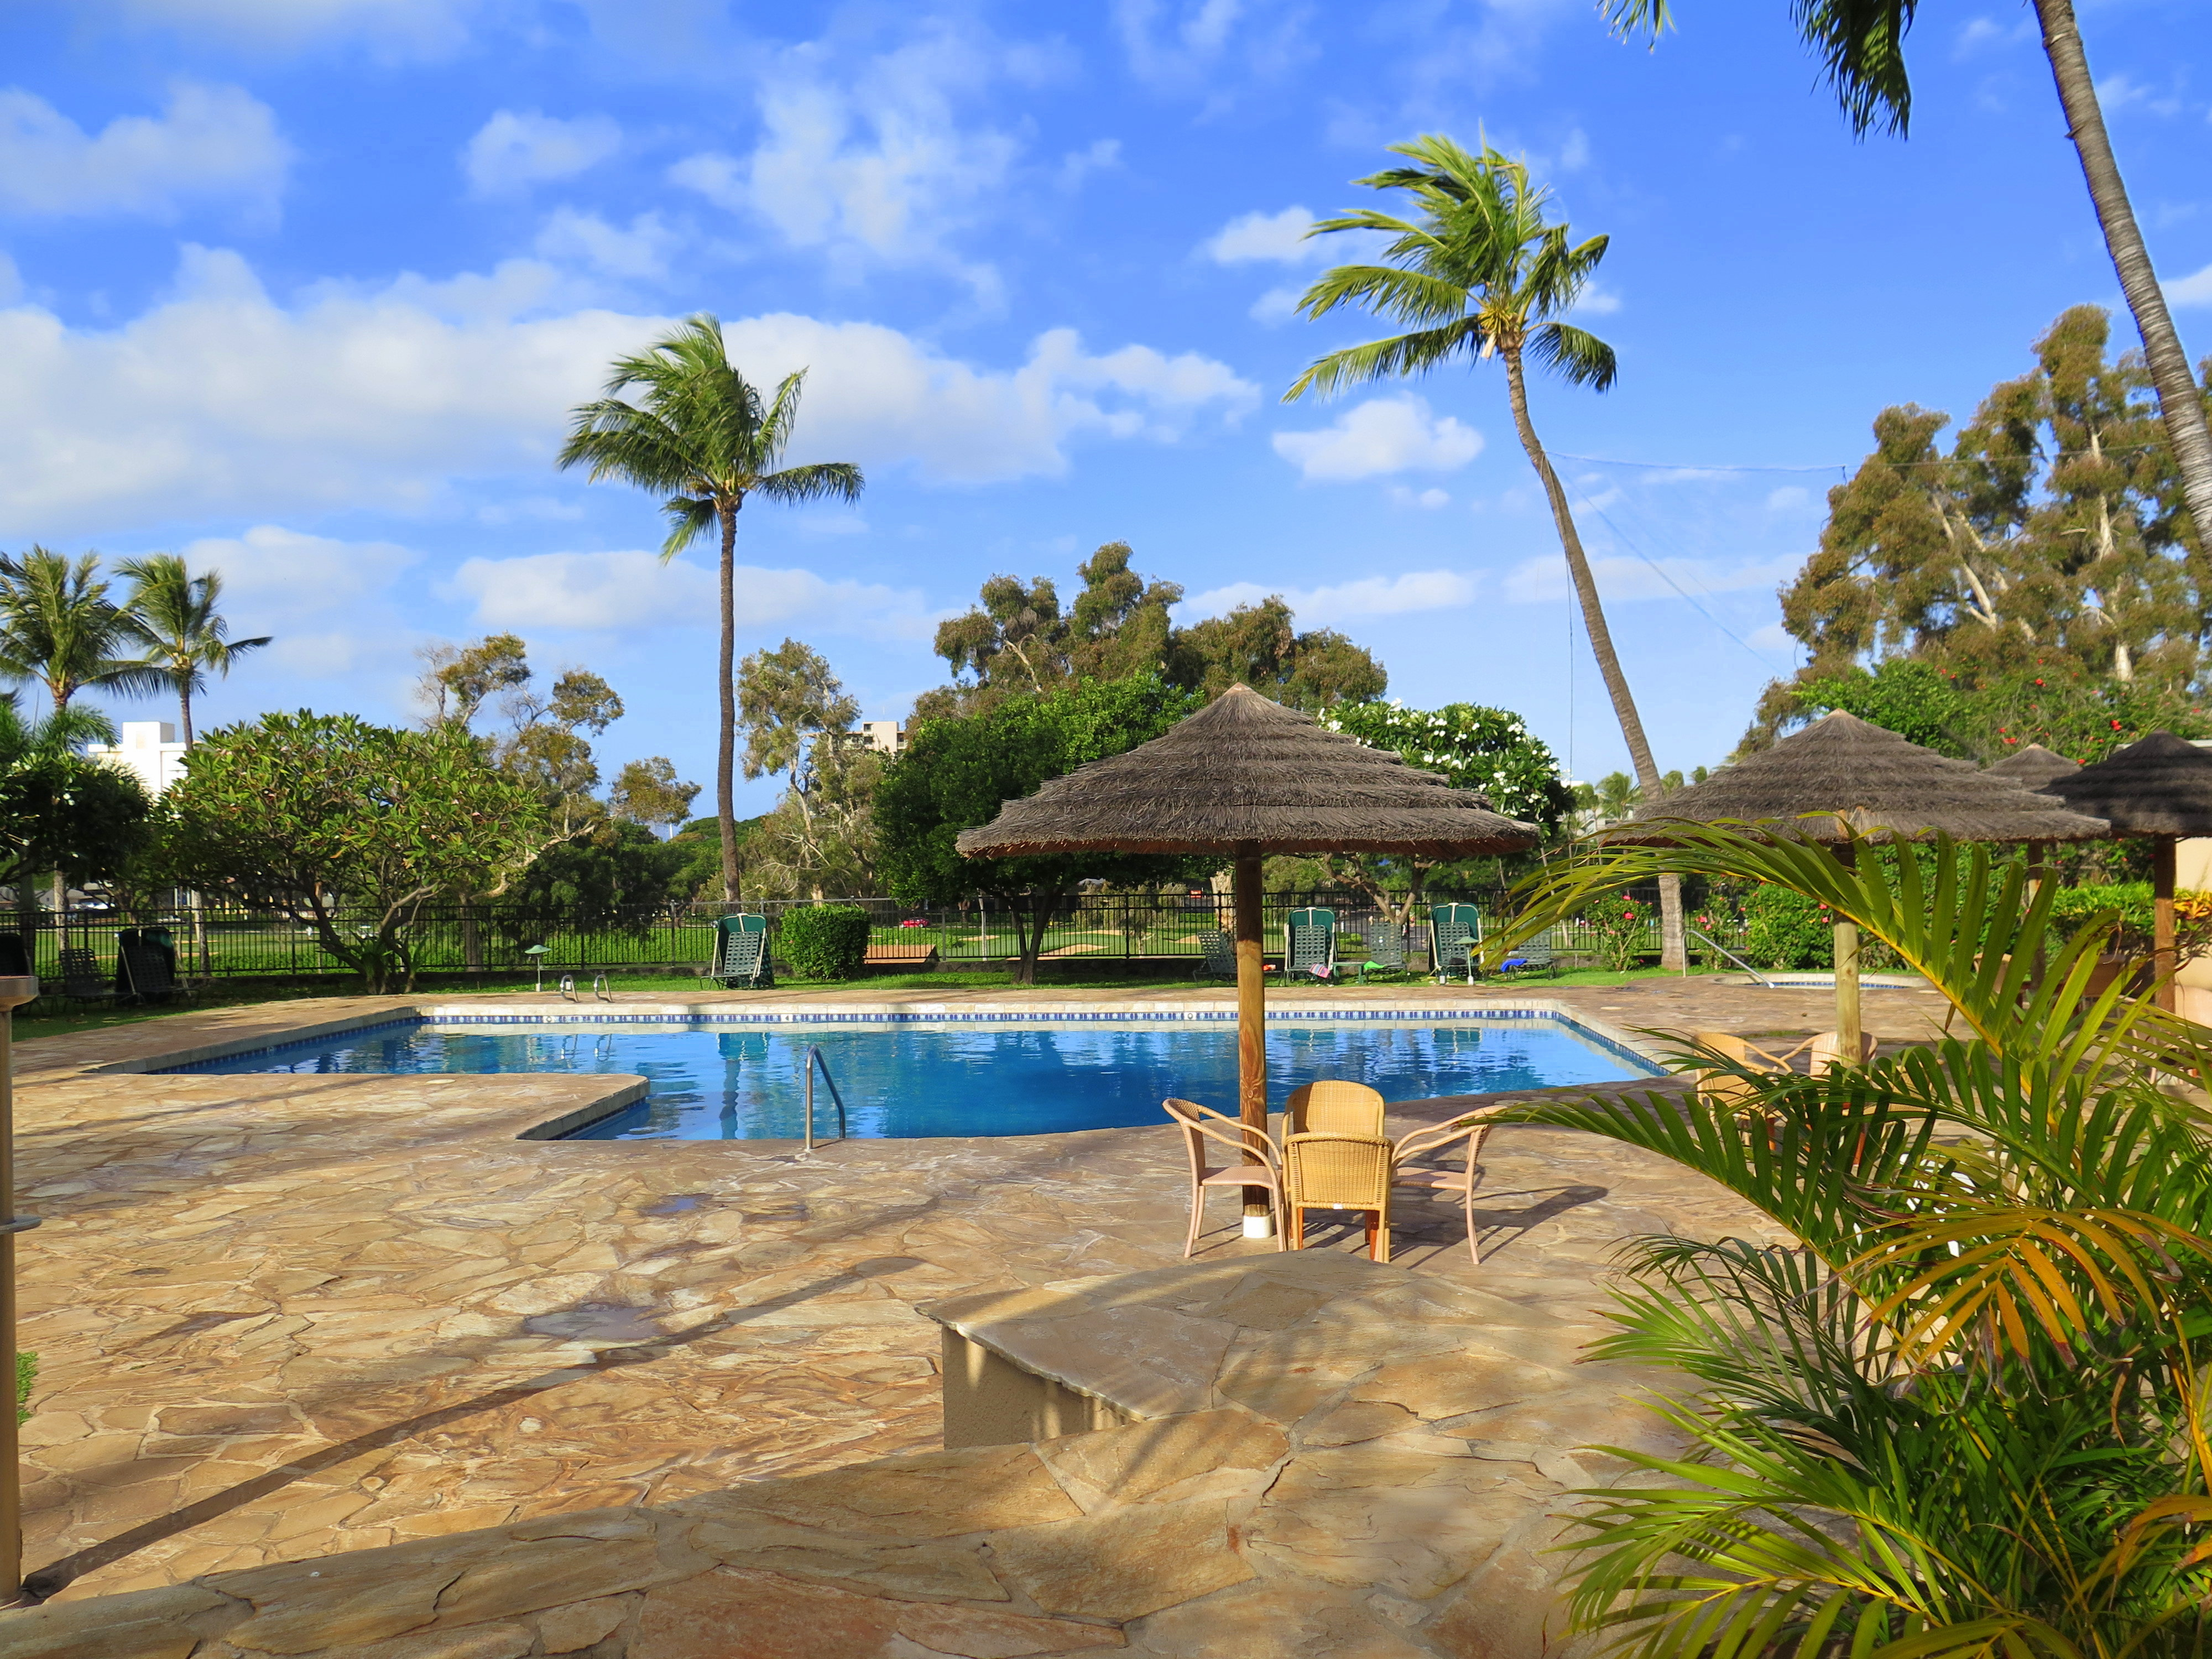 Kaanapali Royal condos offer a great pool and hot tub complex. You'll also find gas barbeques, a great way to save on your food bill.